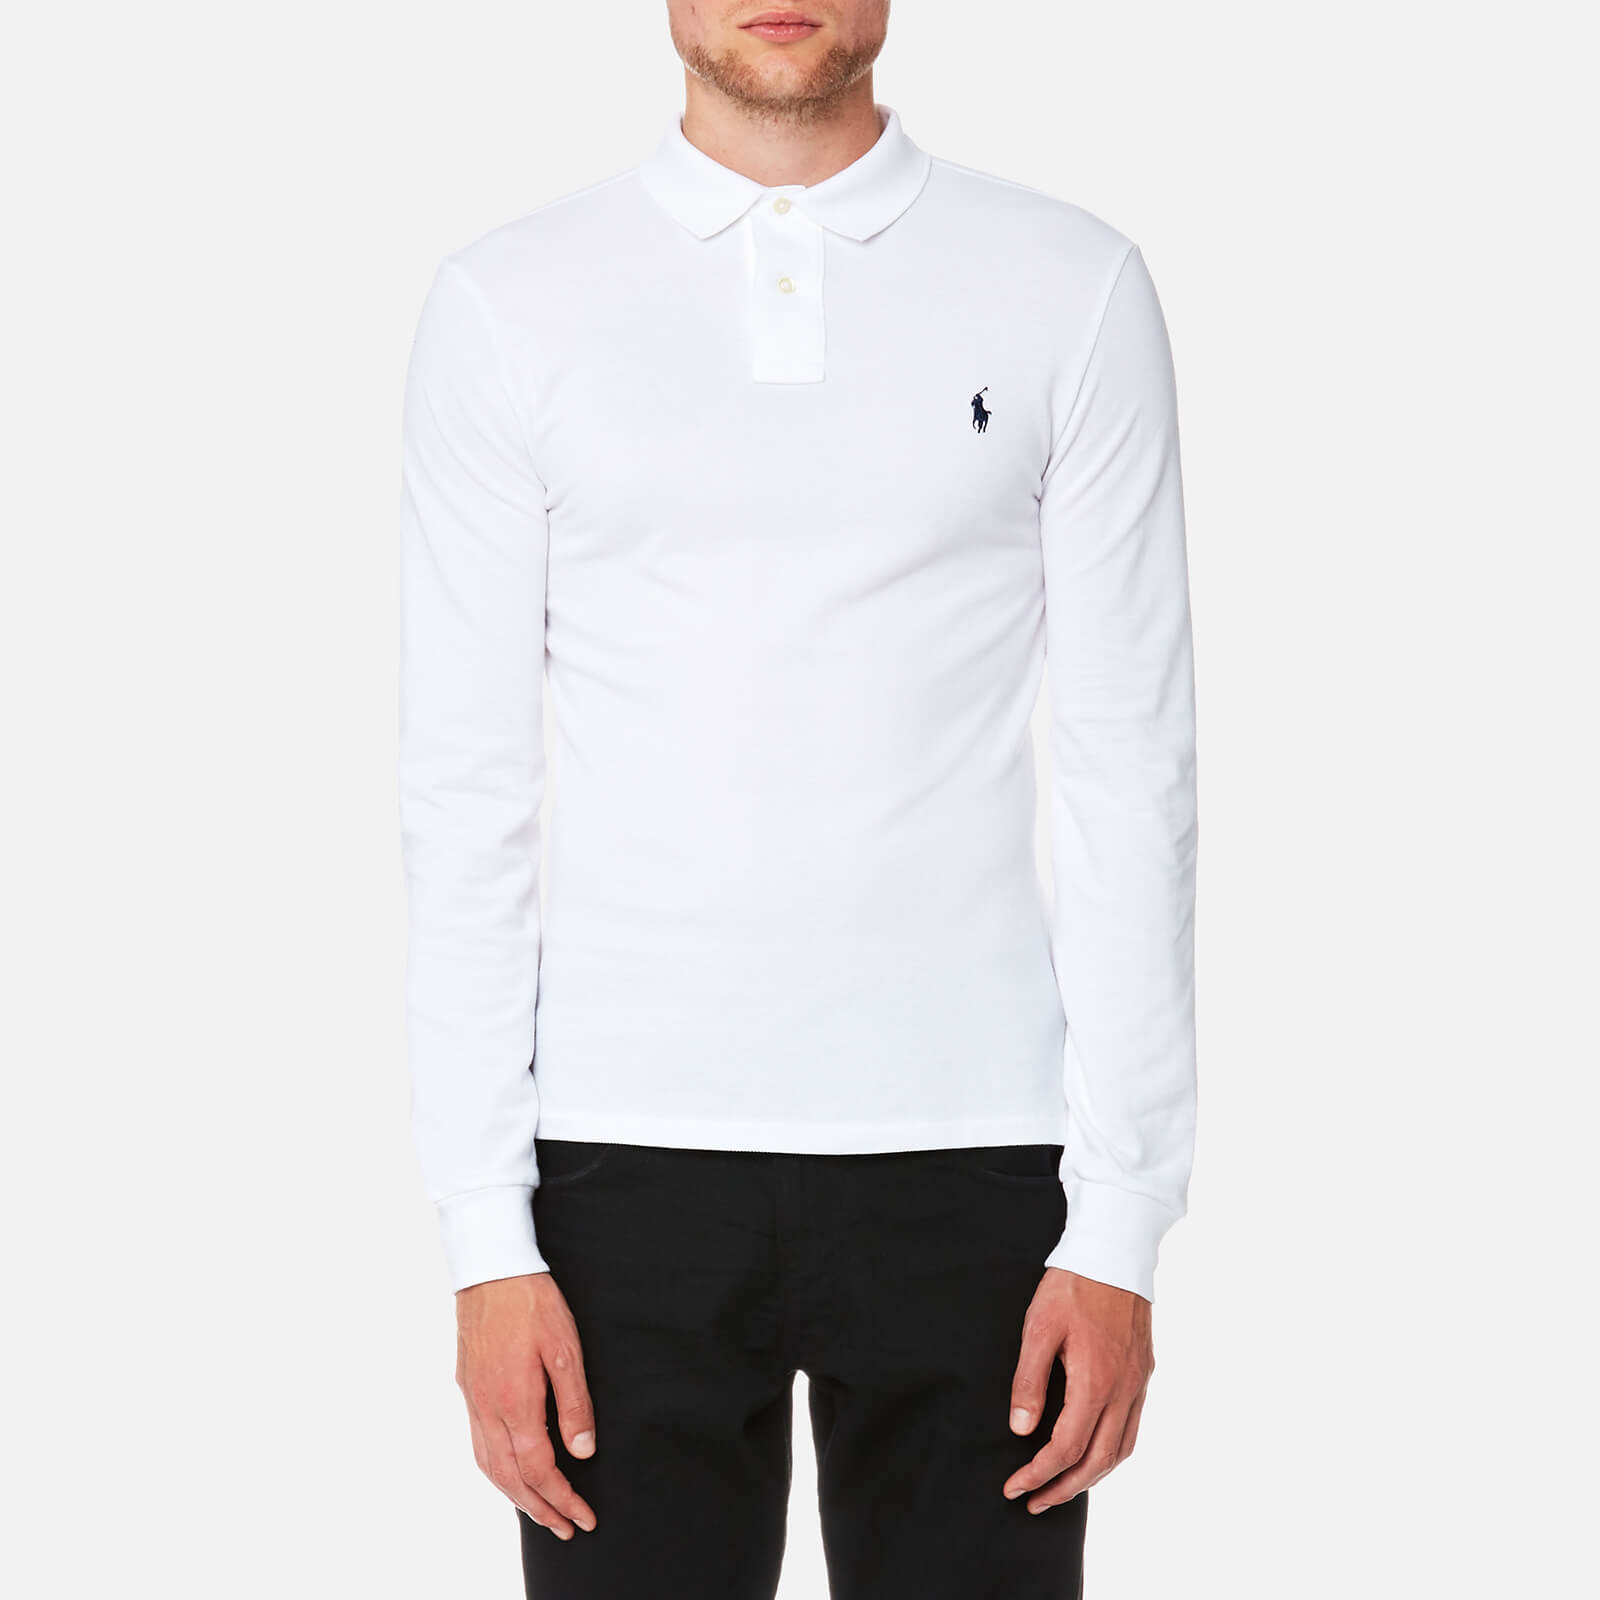 e706212826dc Polo Ralph Lauren Men s Slim Fit Basic Mesh Long Sleeve Polo Shirt - White  - Free UK Delivery over £50